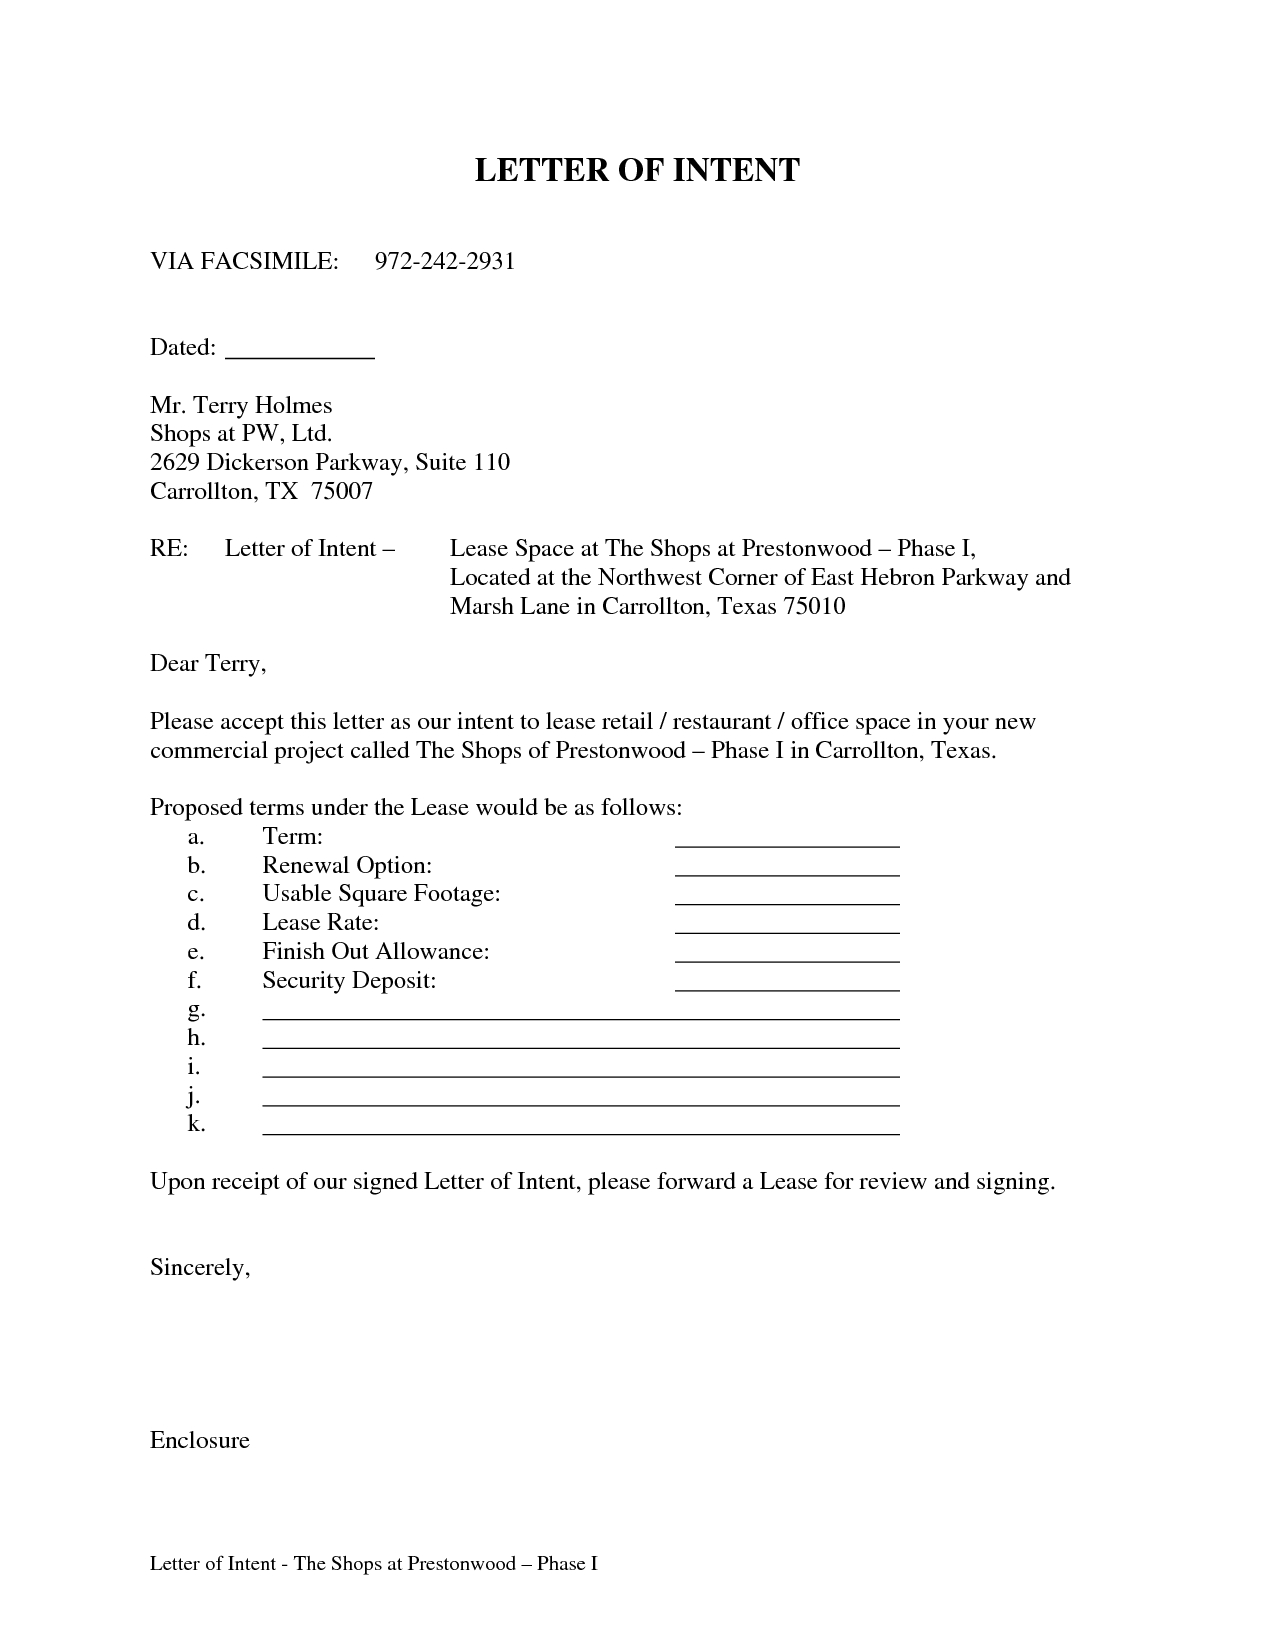 Commercial Real Estate Lease Letter Of Intent Template - Intent to Lease Template Tire Driveeasy Co Letter Real Estate